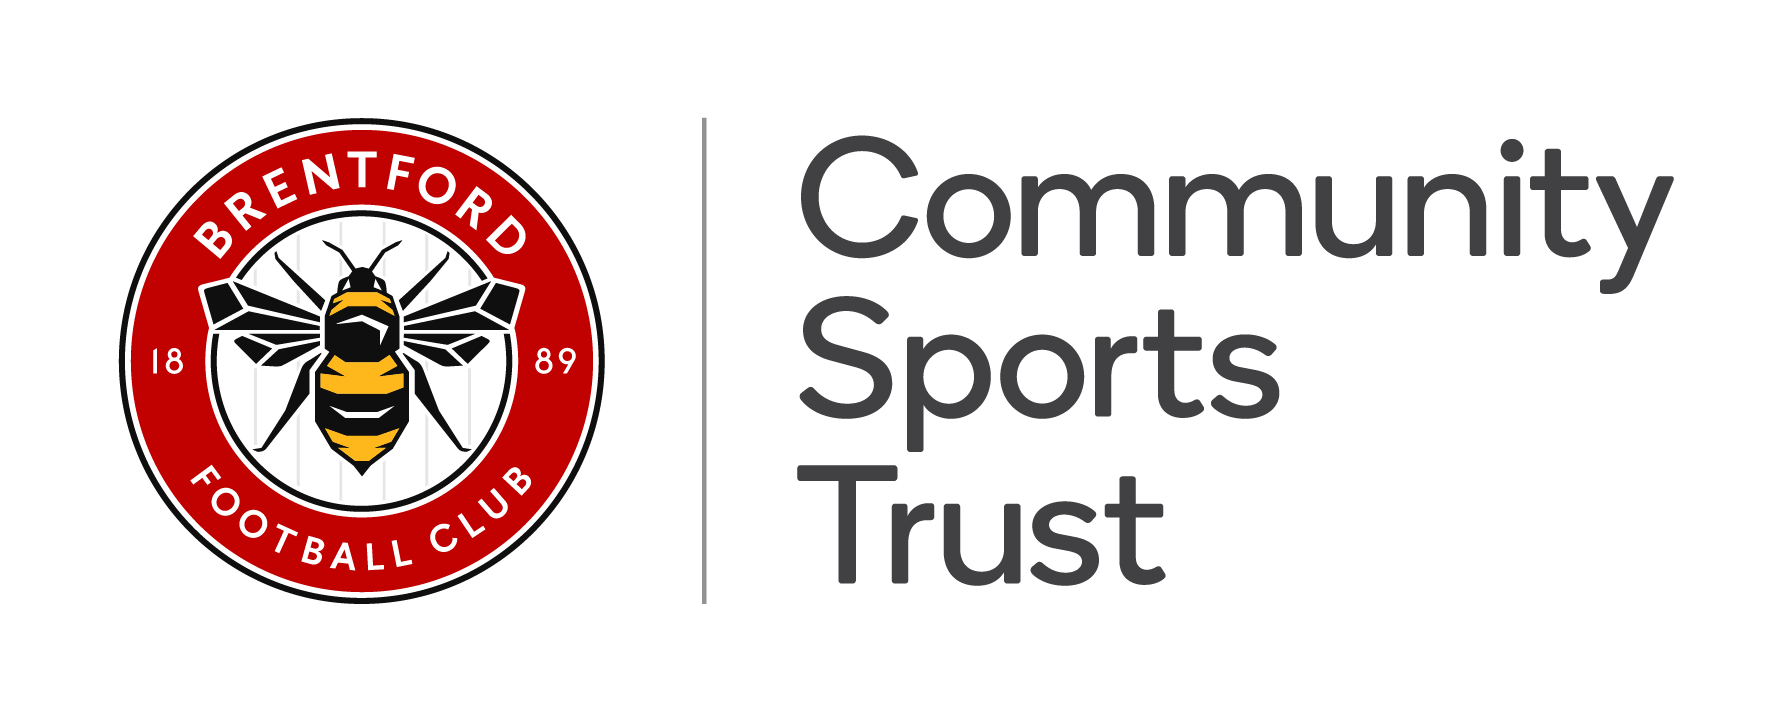 With community work spanning more than three decades, Brentford FC Community Sports Trust has established itself as a pioneering organisation for the local community